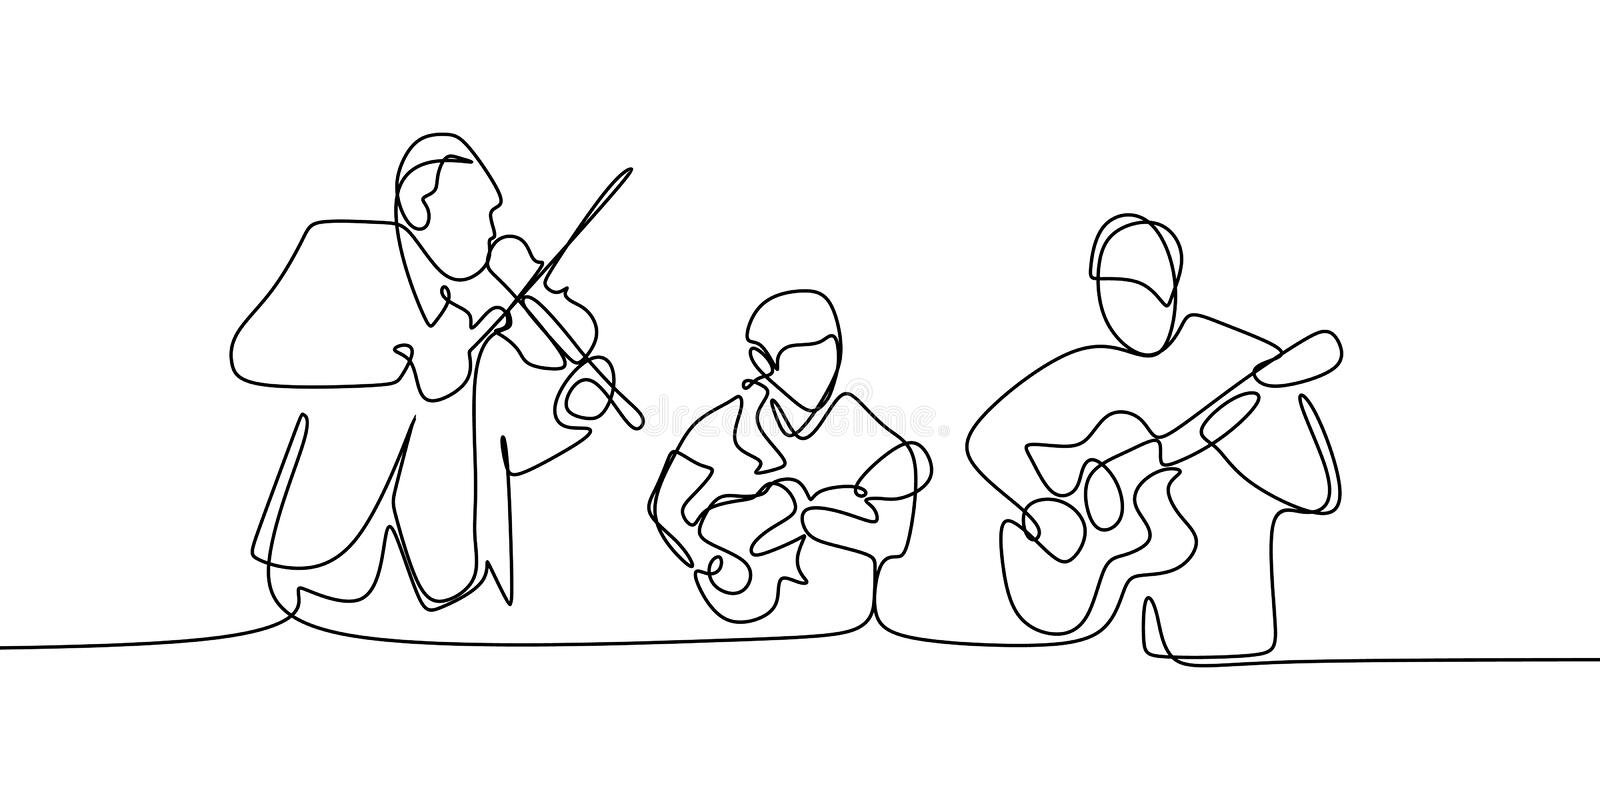 Classical music jazz players continuous one line drawing group of people playing instruments. Drawn outline man business musician creative saxophone concept stock illustration